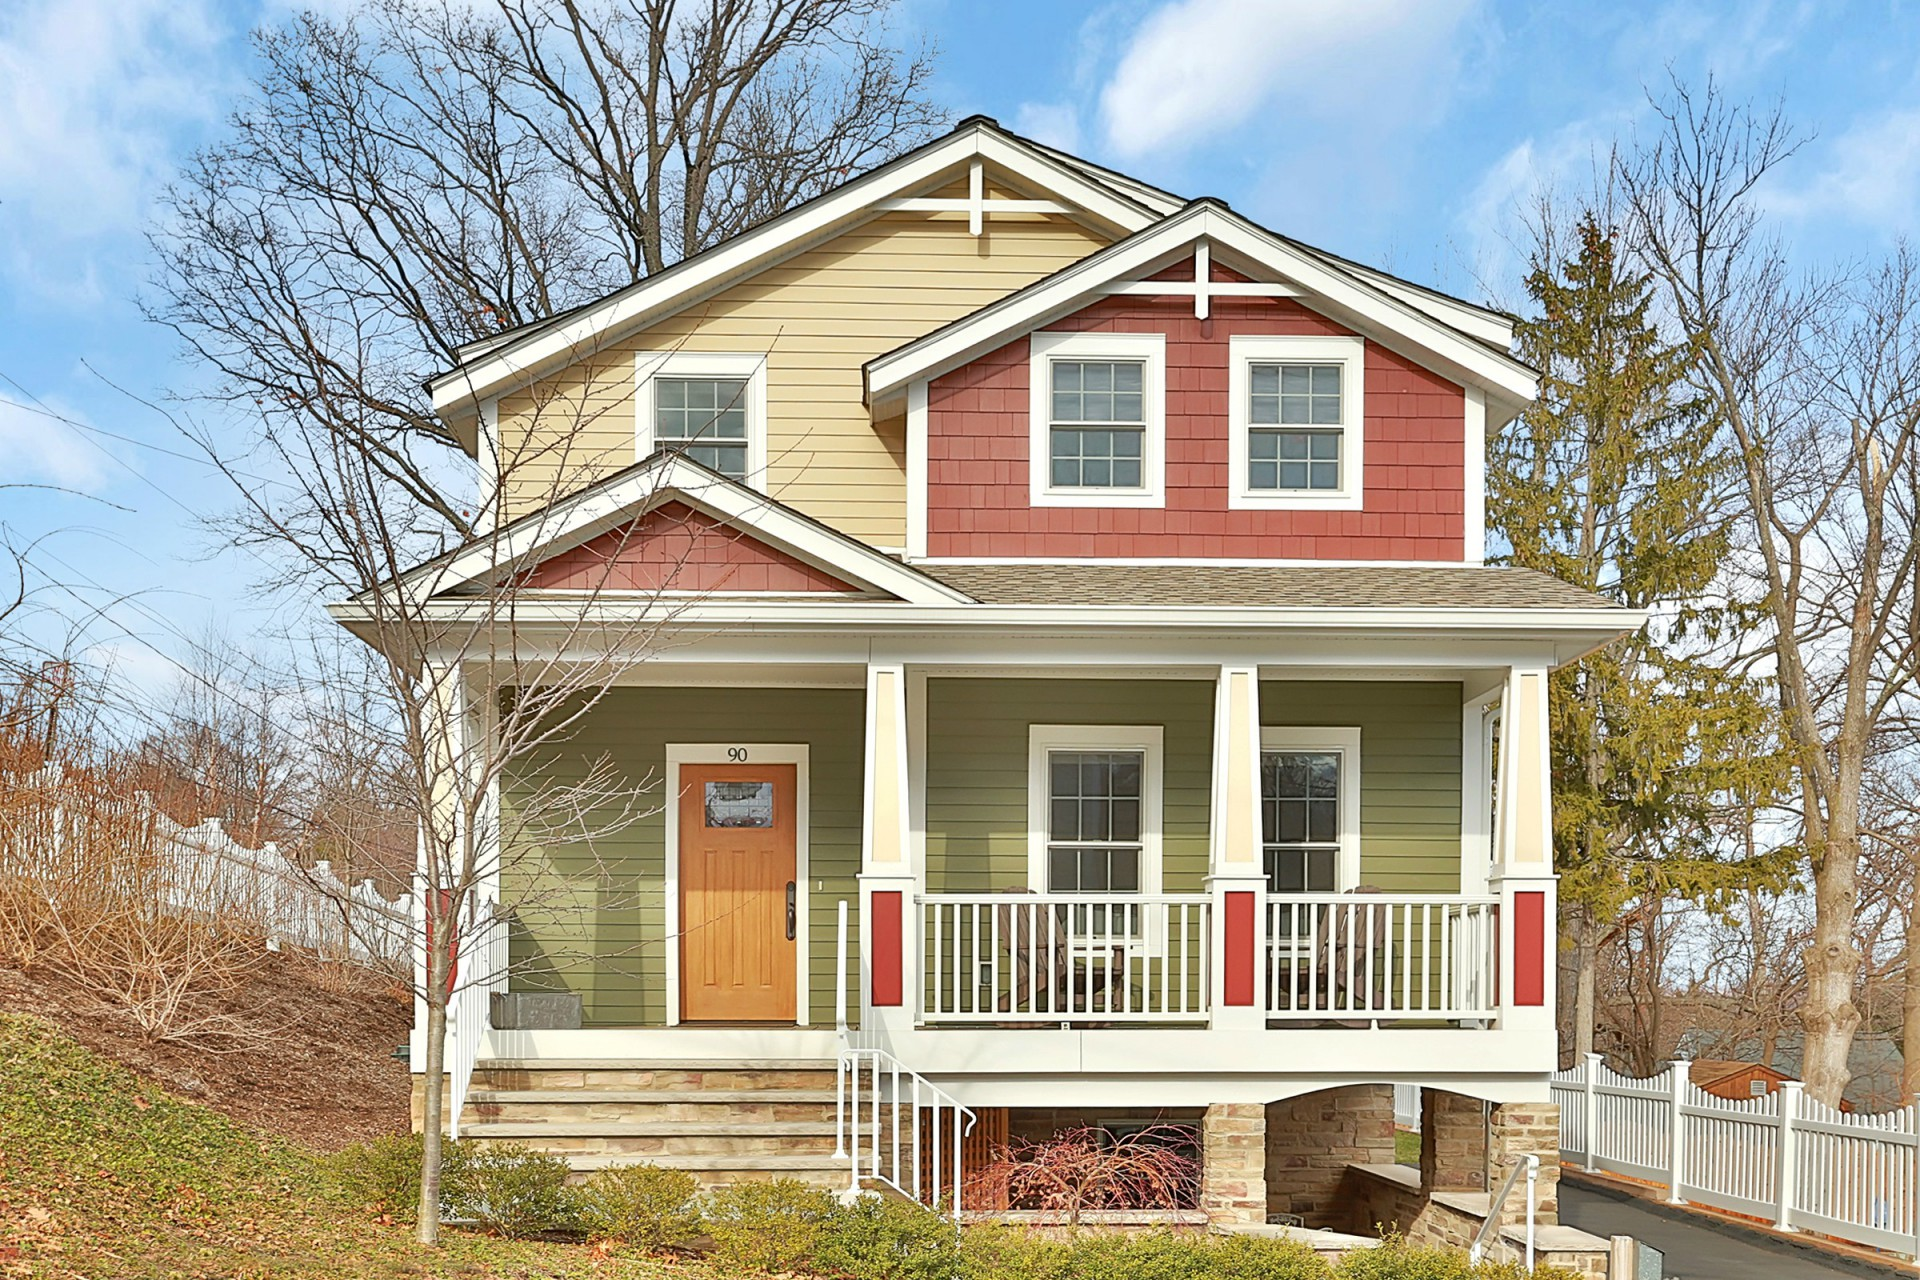 Single Family Home for Sale at Village Colonial 90 6th Ave Nyack, New York, 10960 United States